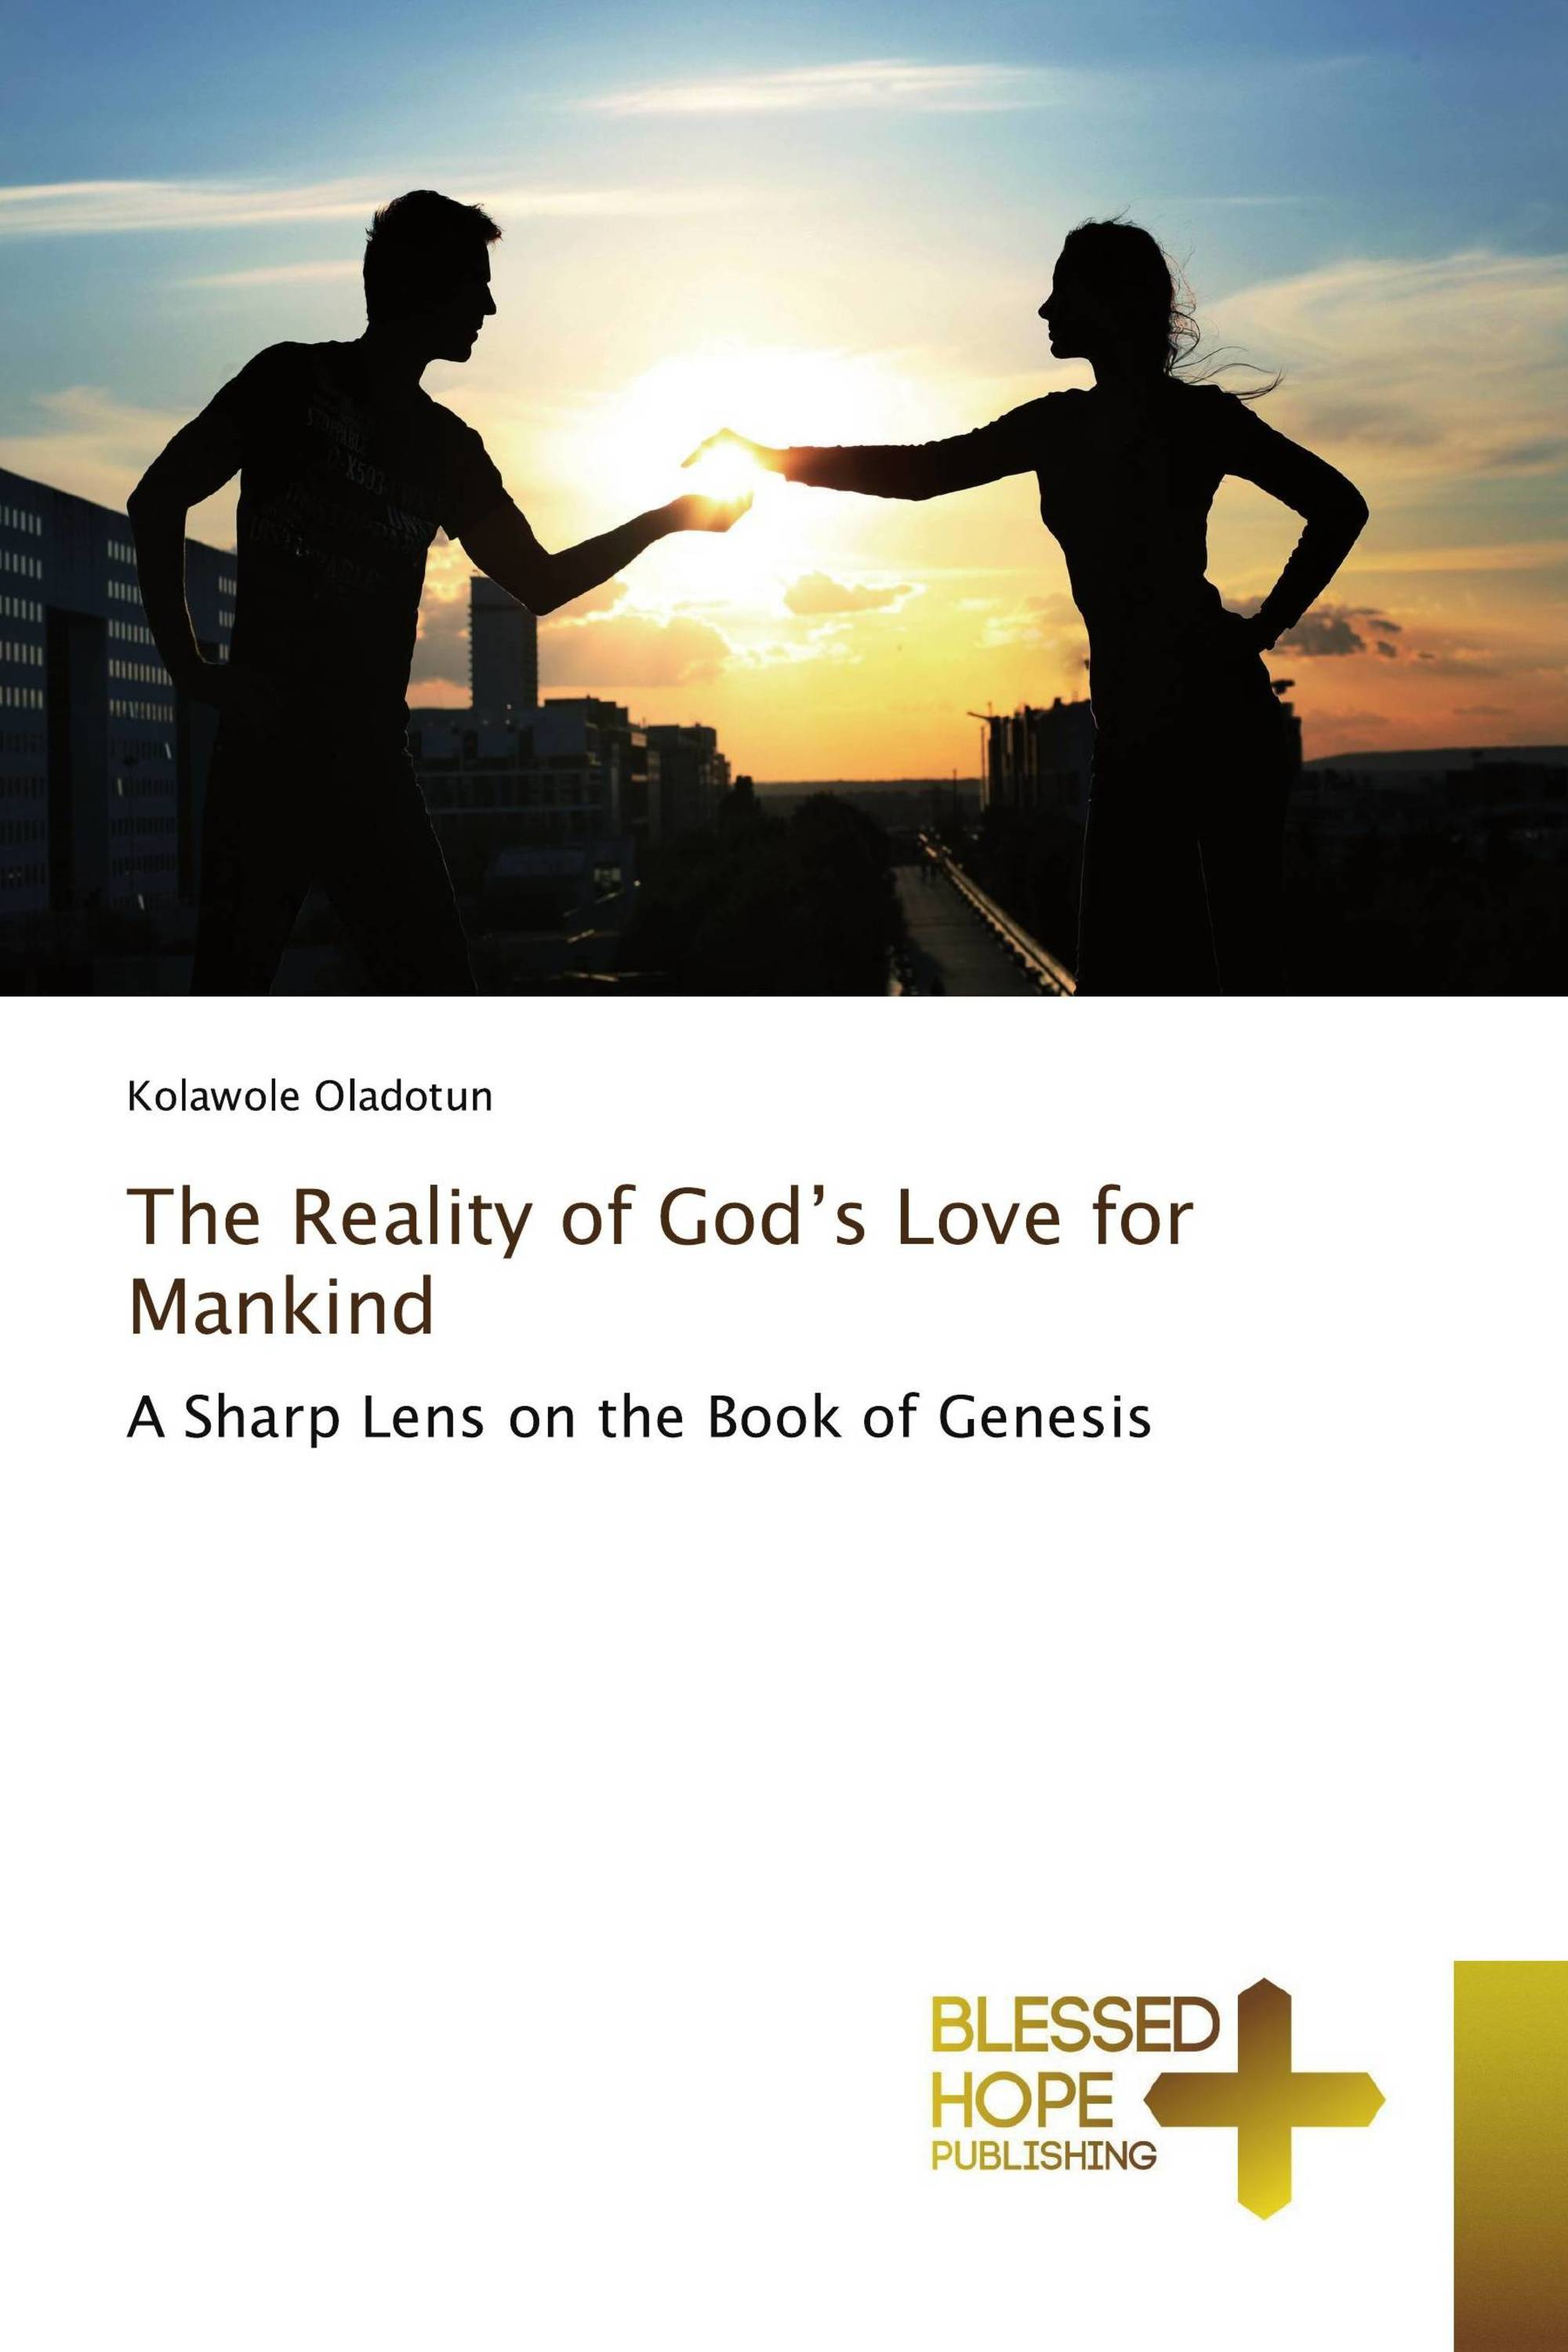 The Reality of God's Love for Mankind